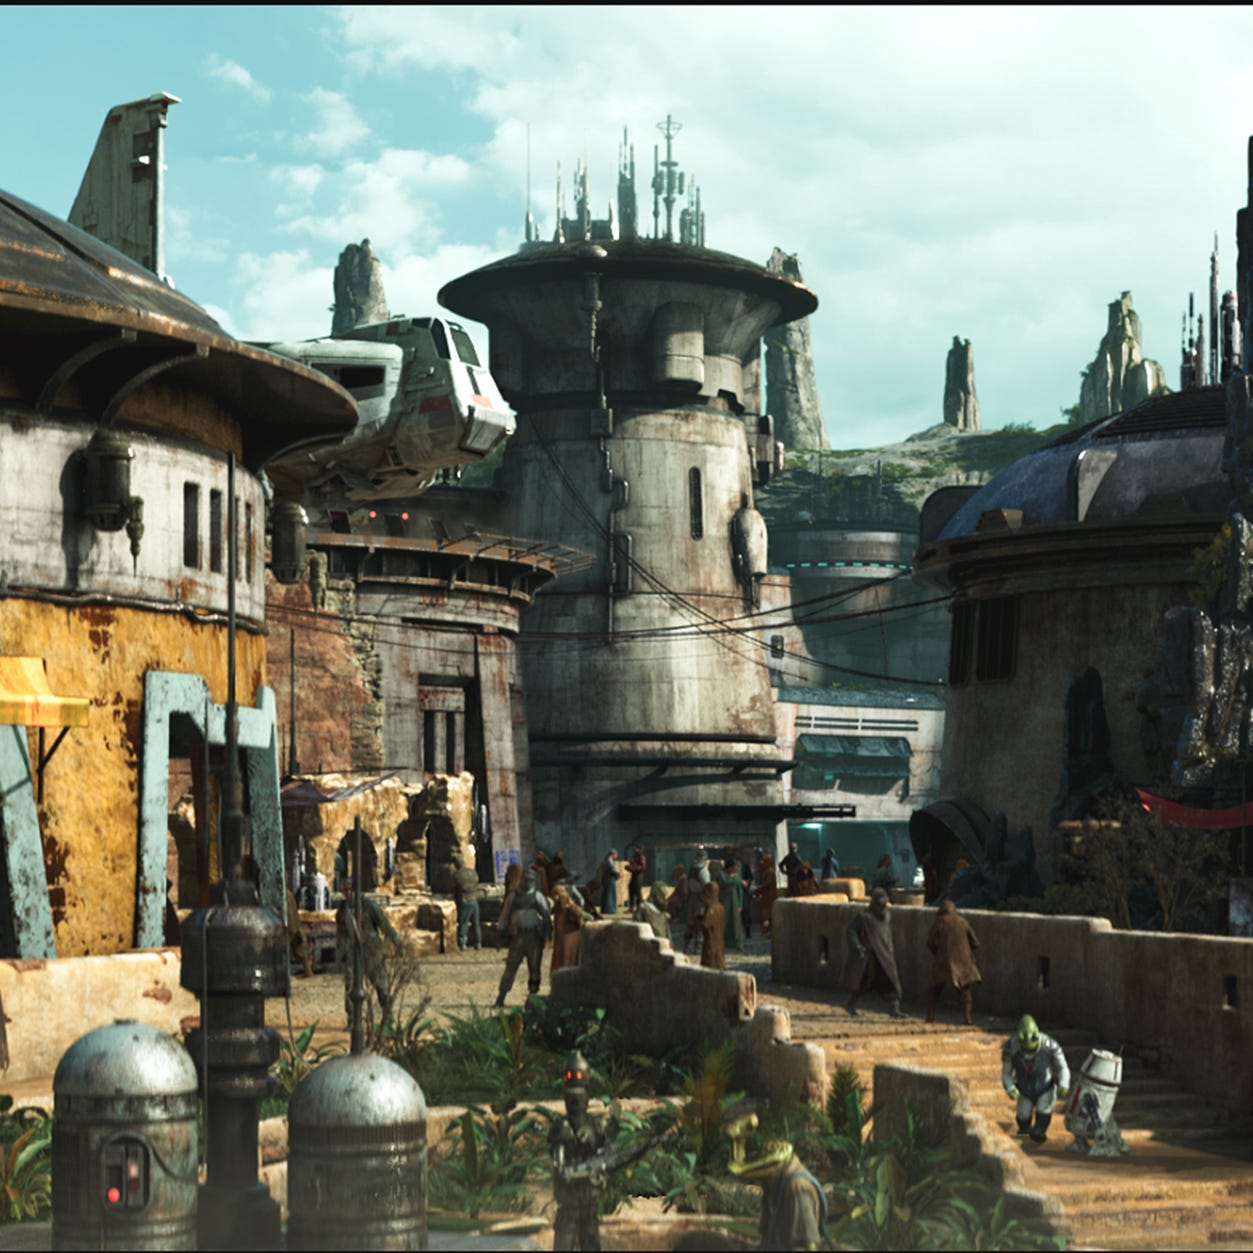 Worried about crowds at Star Wars land? So is Disney, and here is what it's doing about it